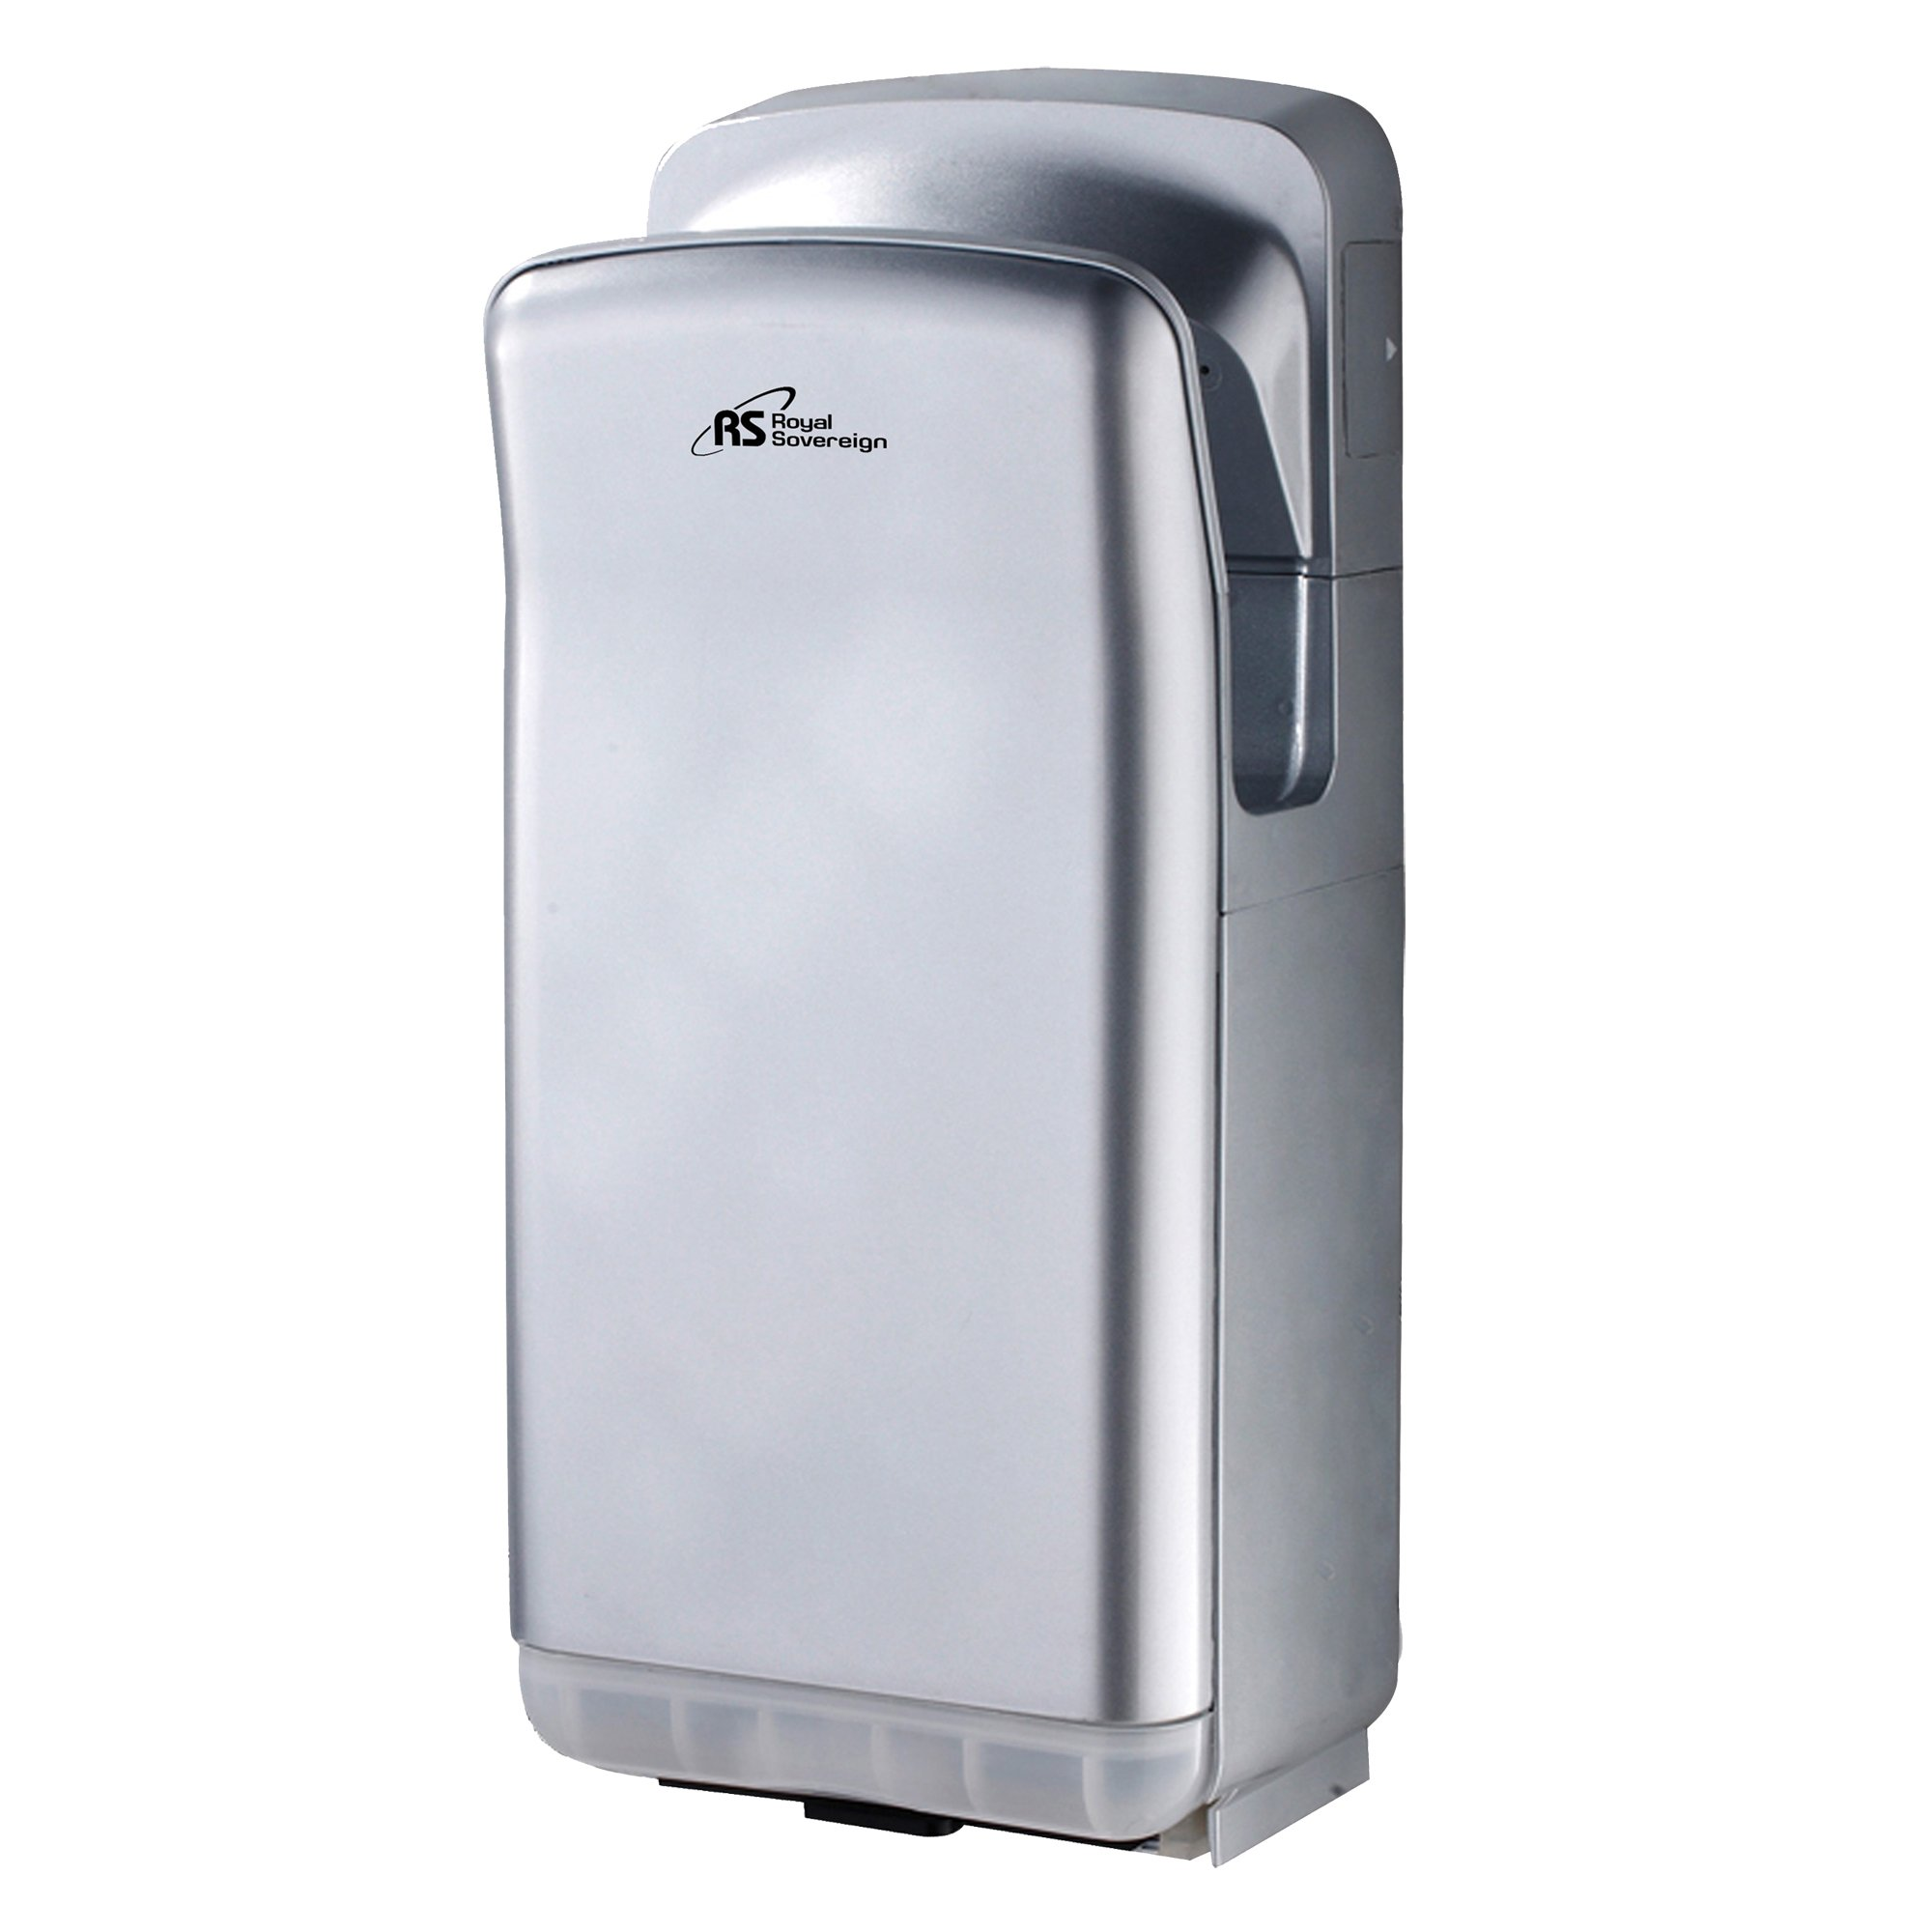 Royal Sovereign RTHD-461S Touchless Automatic Hand Dryer, Vertical, 15 seconds Operating Time